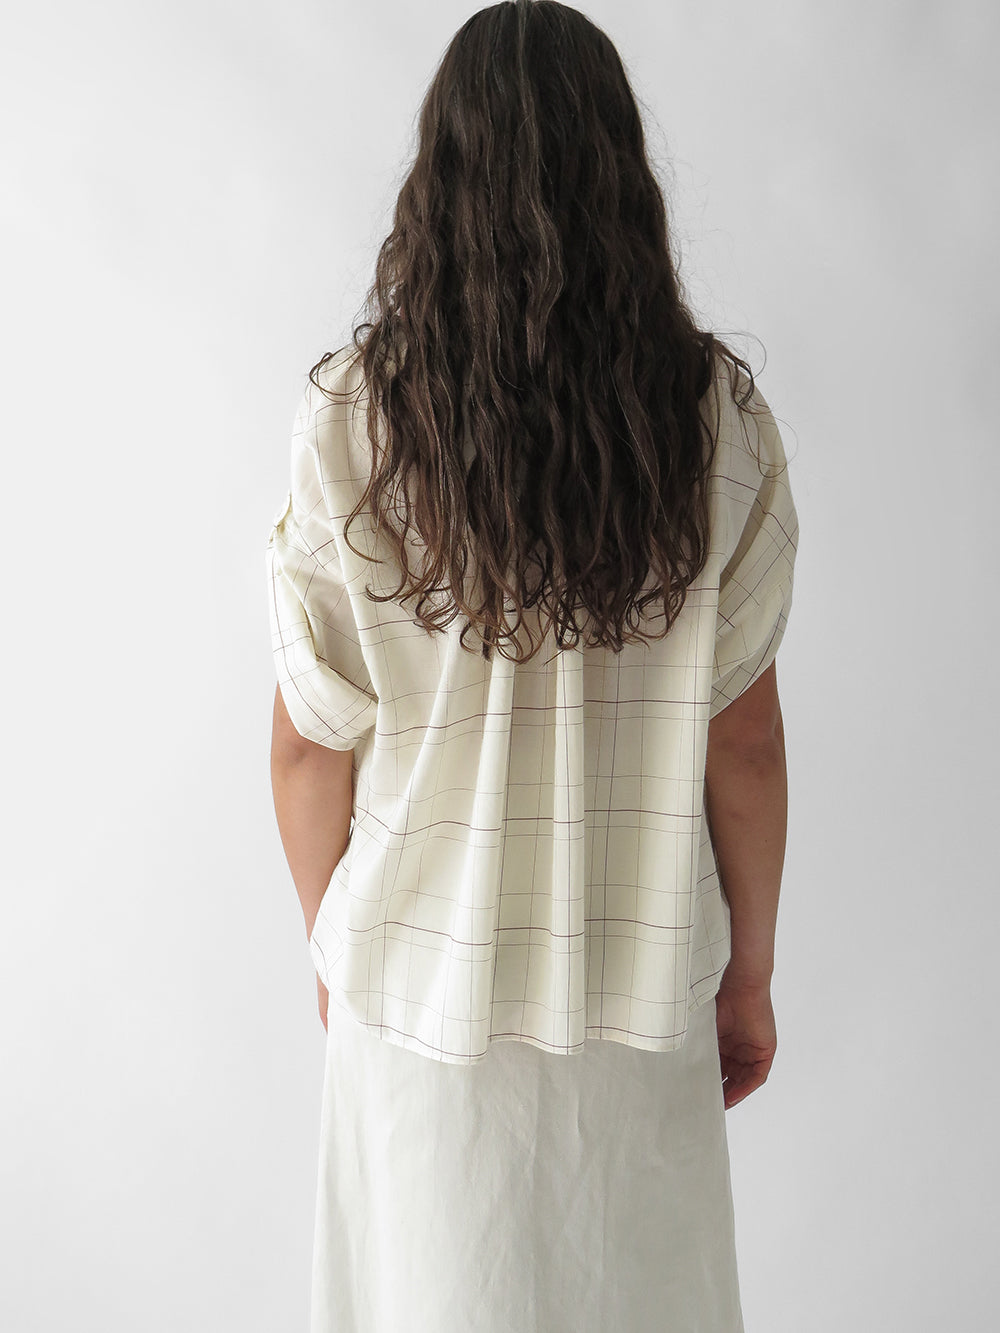 nico flora shirt in white check